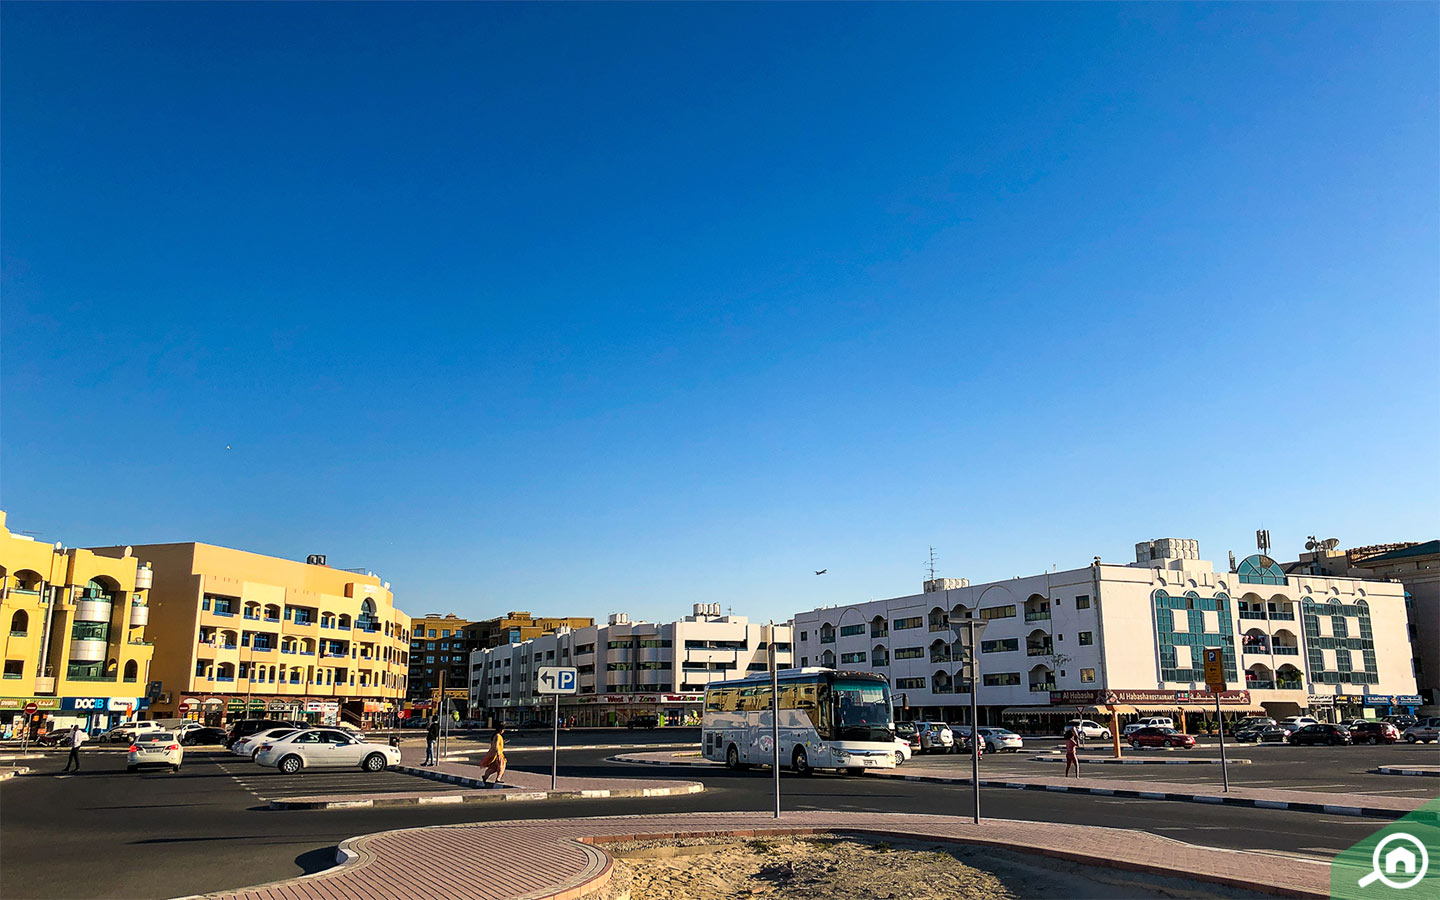 Exterior view of Apartment buildings in Abu Hail